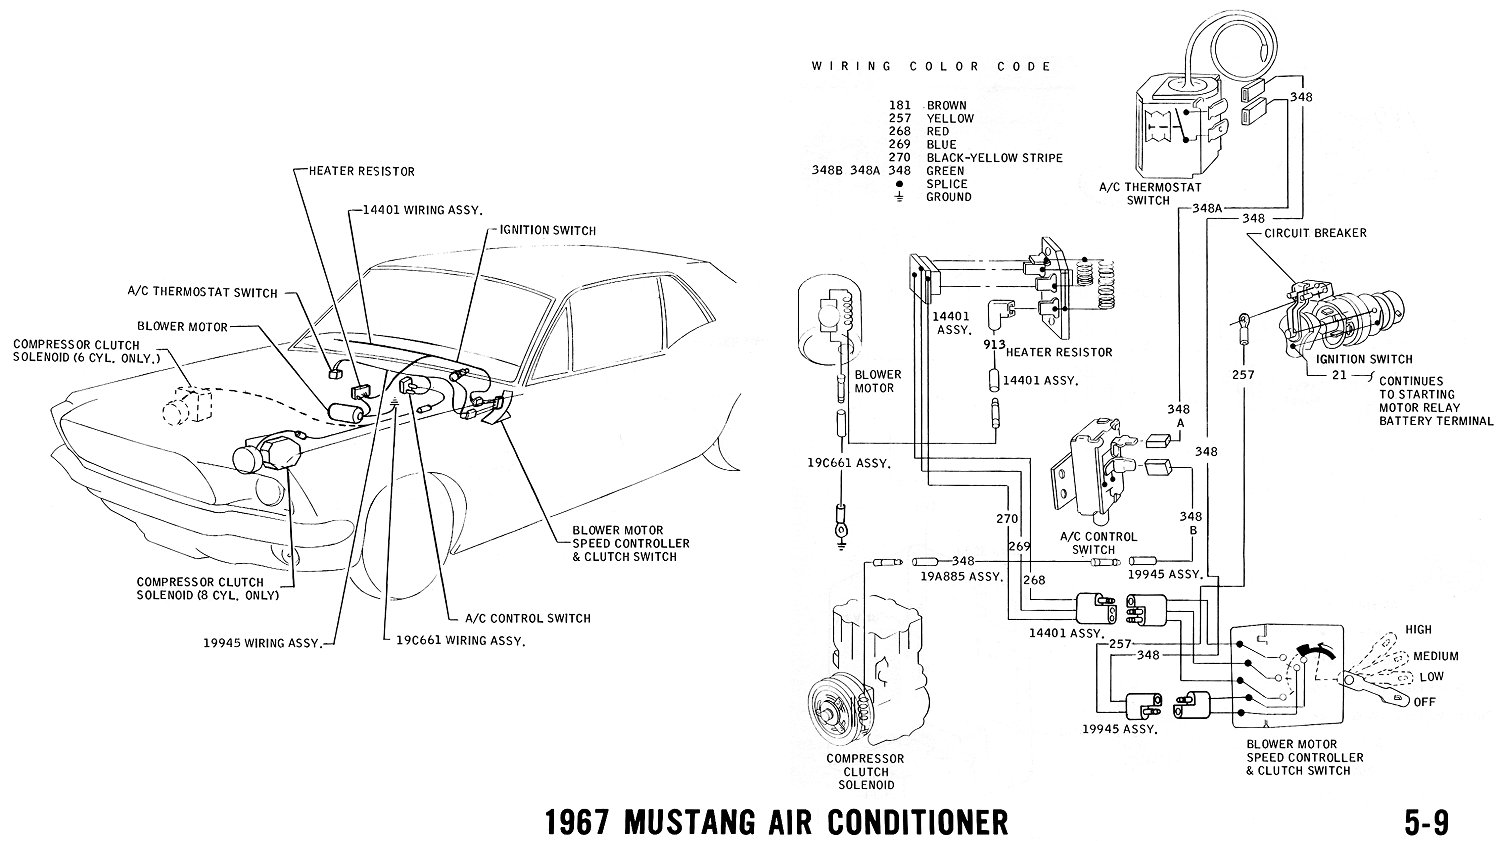 67ac 1967 mustang wiring and vacuum diagrams average joe restoration 67 cougar turn signal wiring diagram at gsmx.co